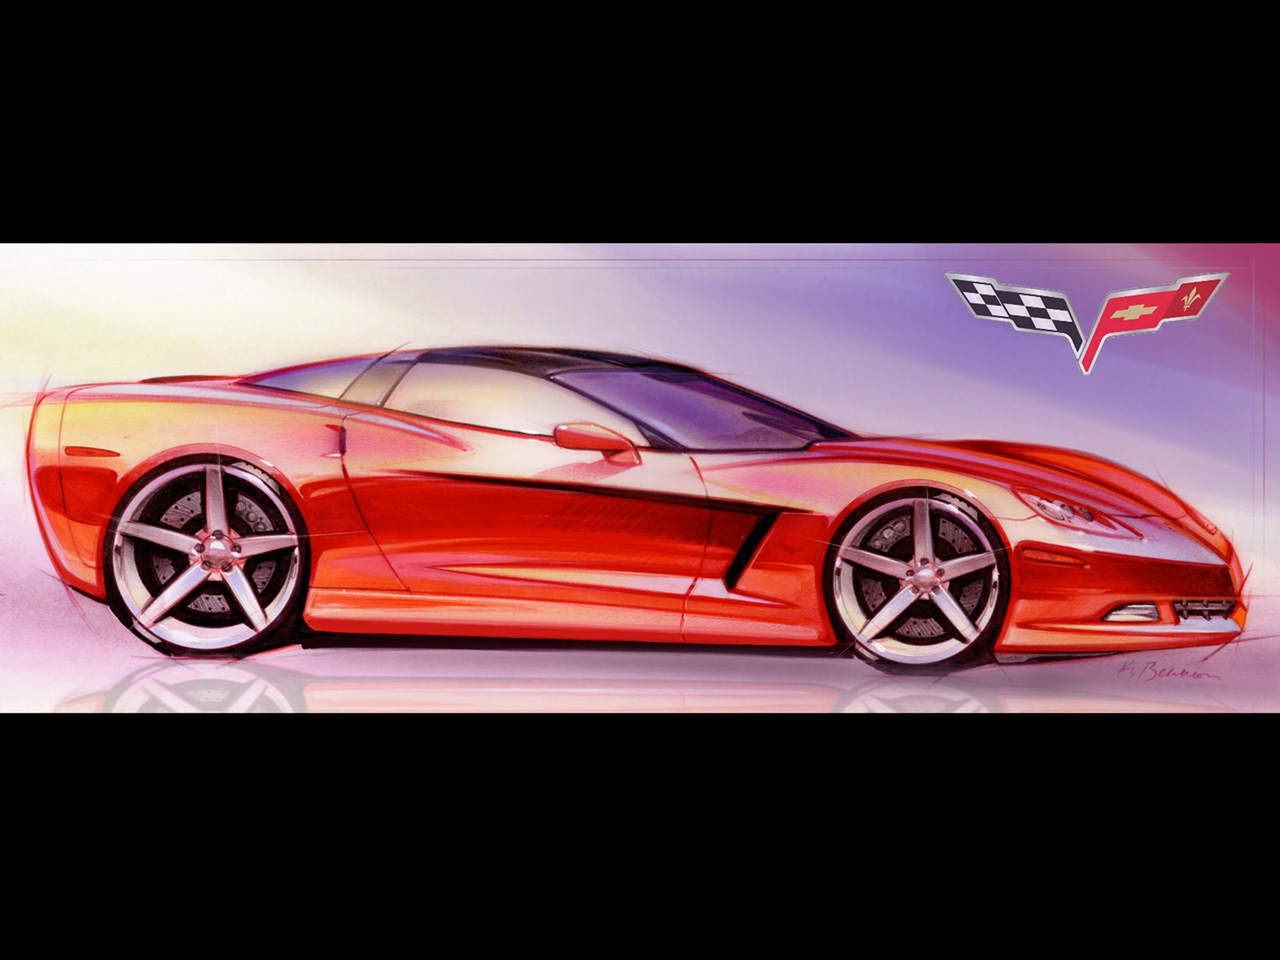 Corvette Logo Wallpaper Free Wallpaper Hd